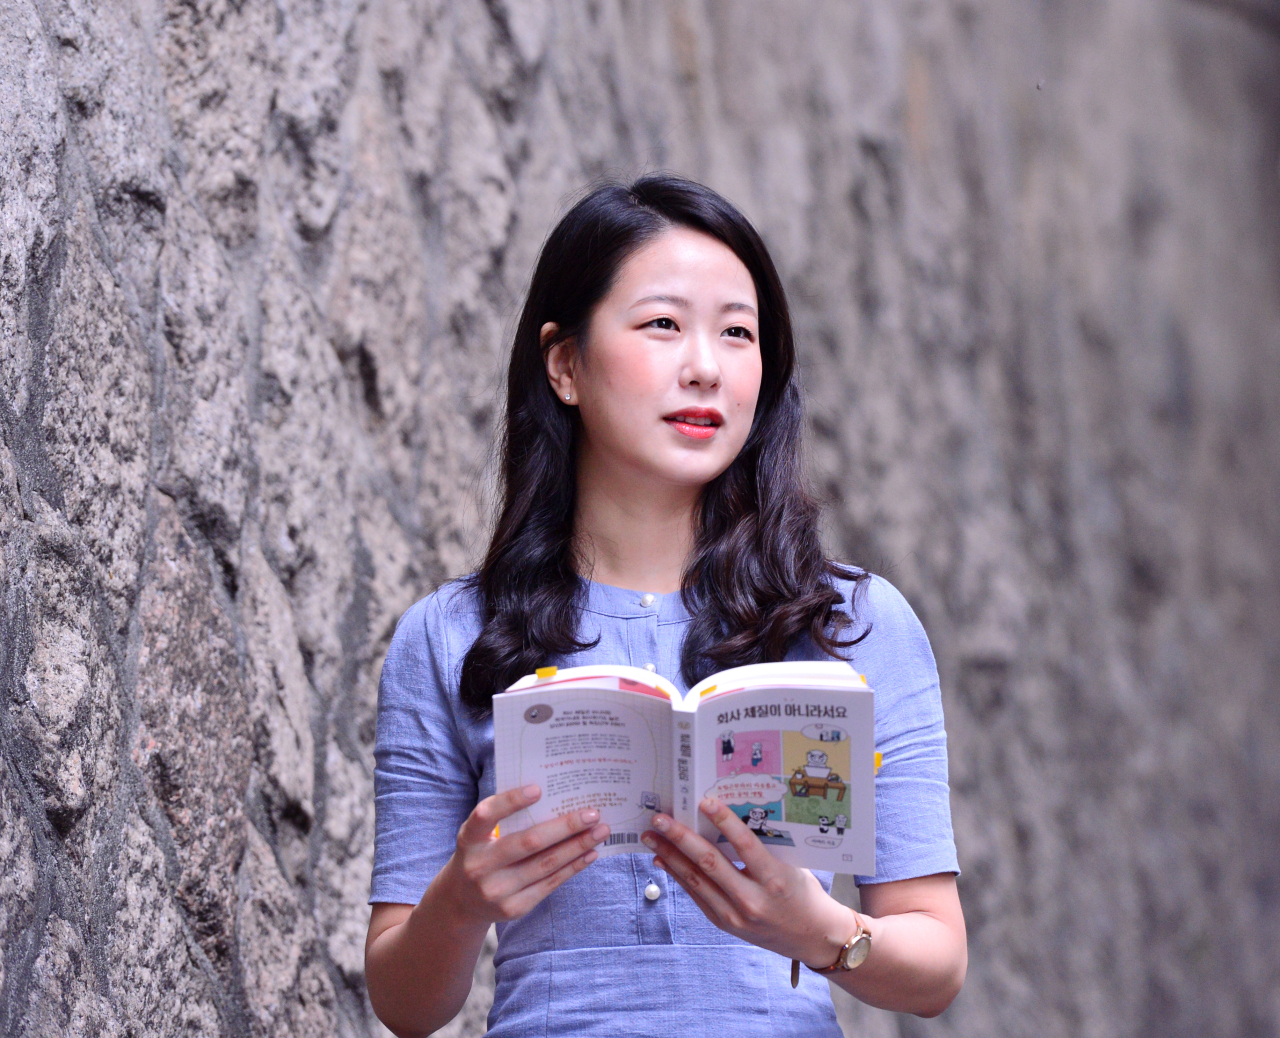 Seo Eu-ra, translator, author and YouTuber, poses in a recent interview with The Korea Herald. (Park Hyun-koo / The Korea Herald)